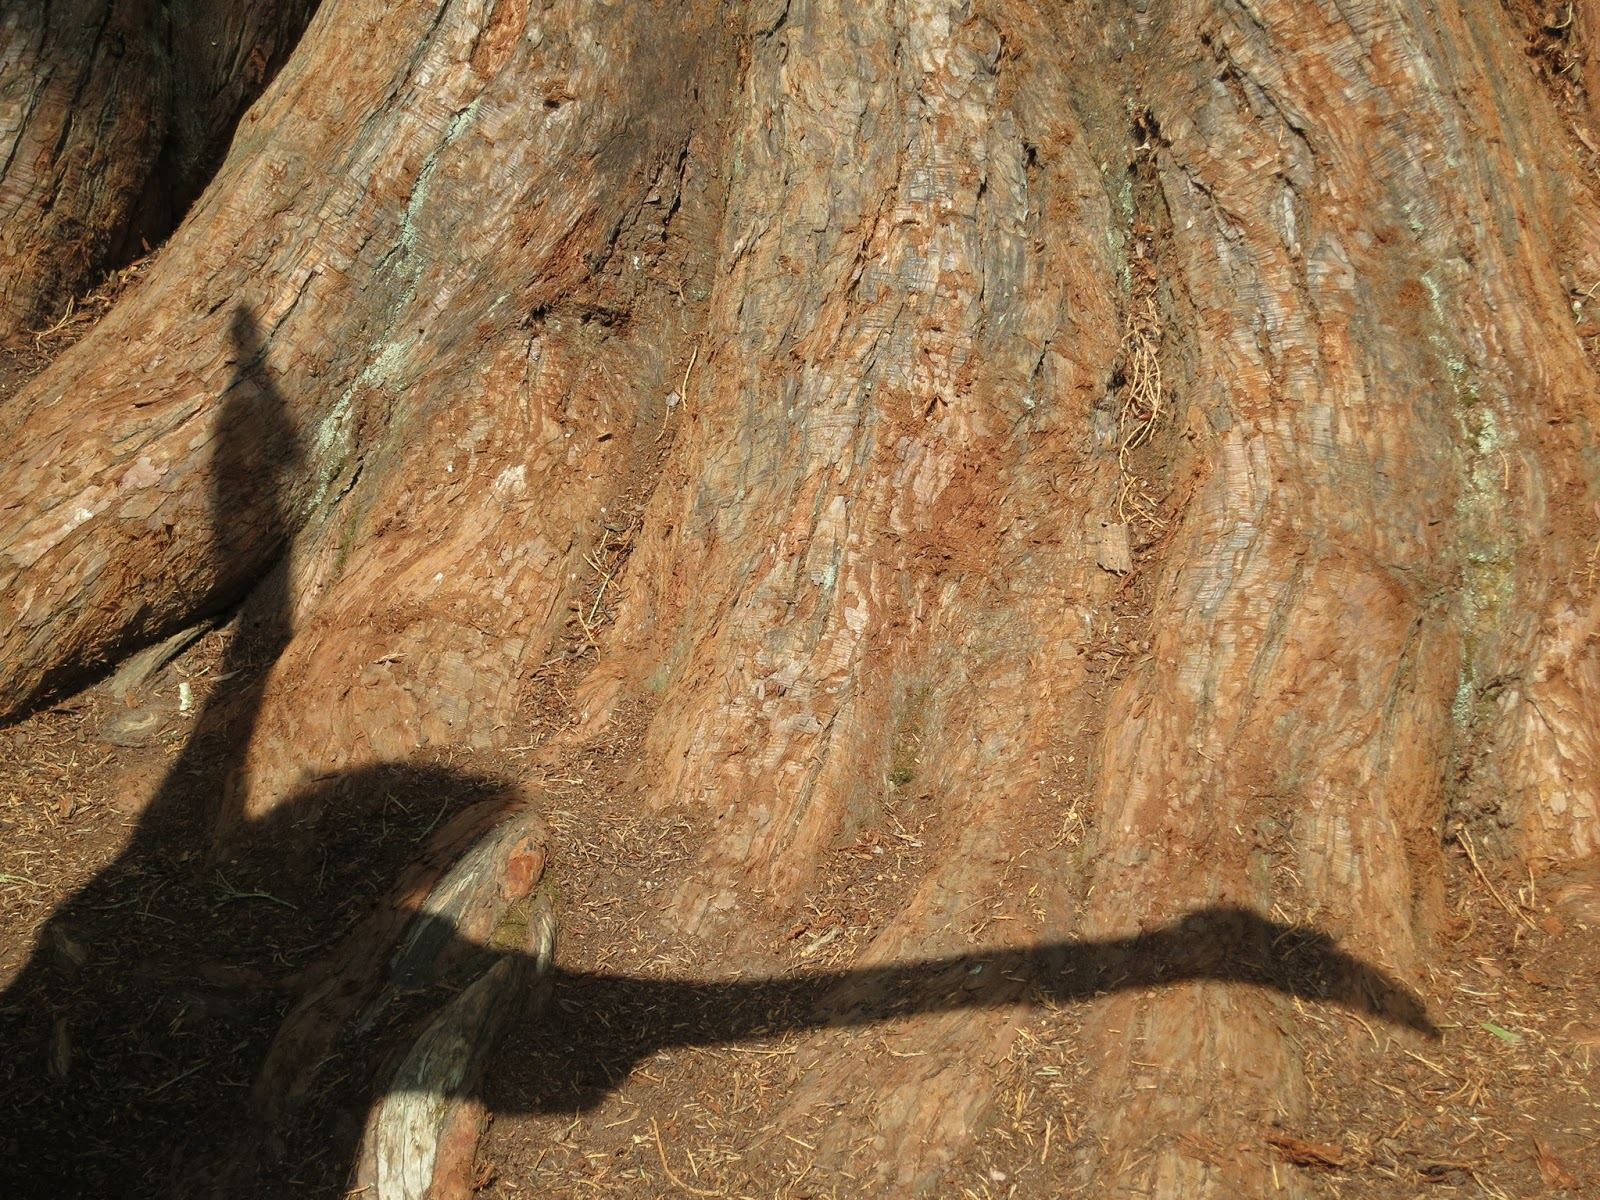 Shadow of open arms on flare of redwood tree